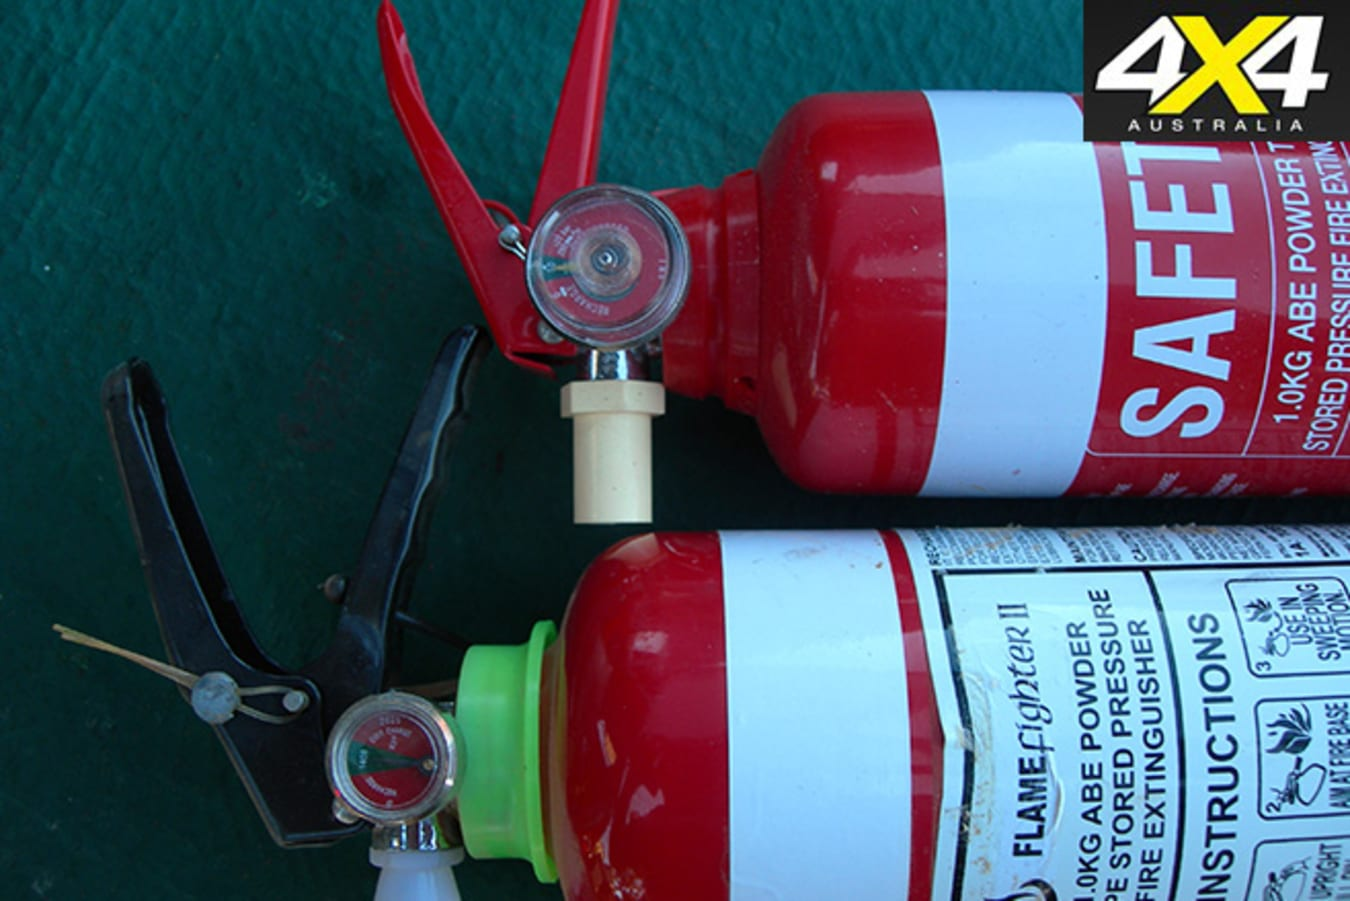 Frequently check your fire extinguisher.